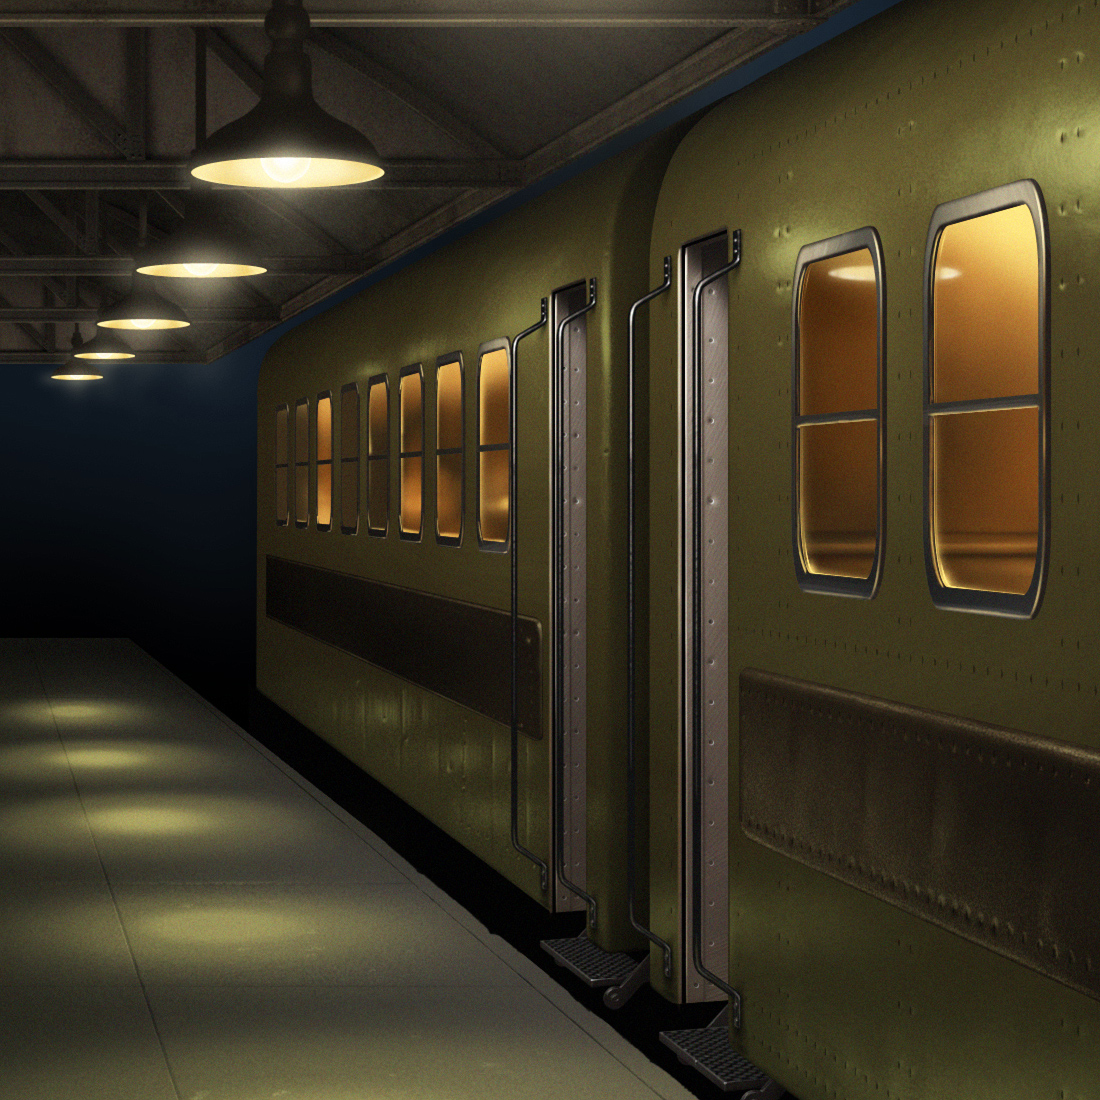 Illustration of mid-20th century train cars at a station platform.